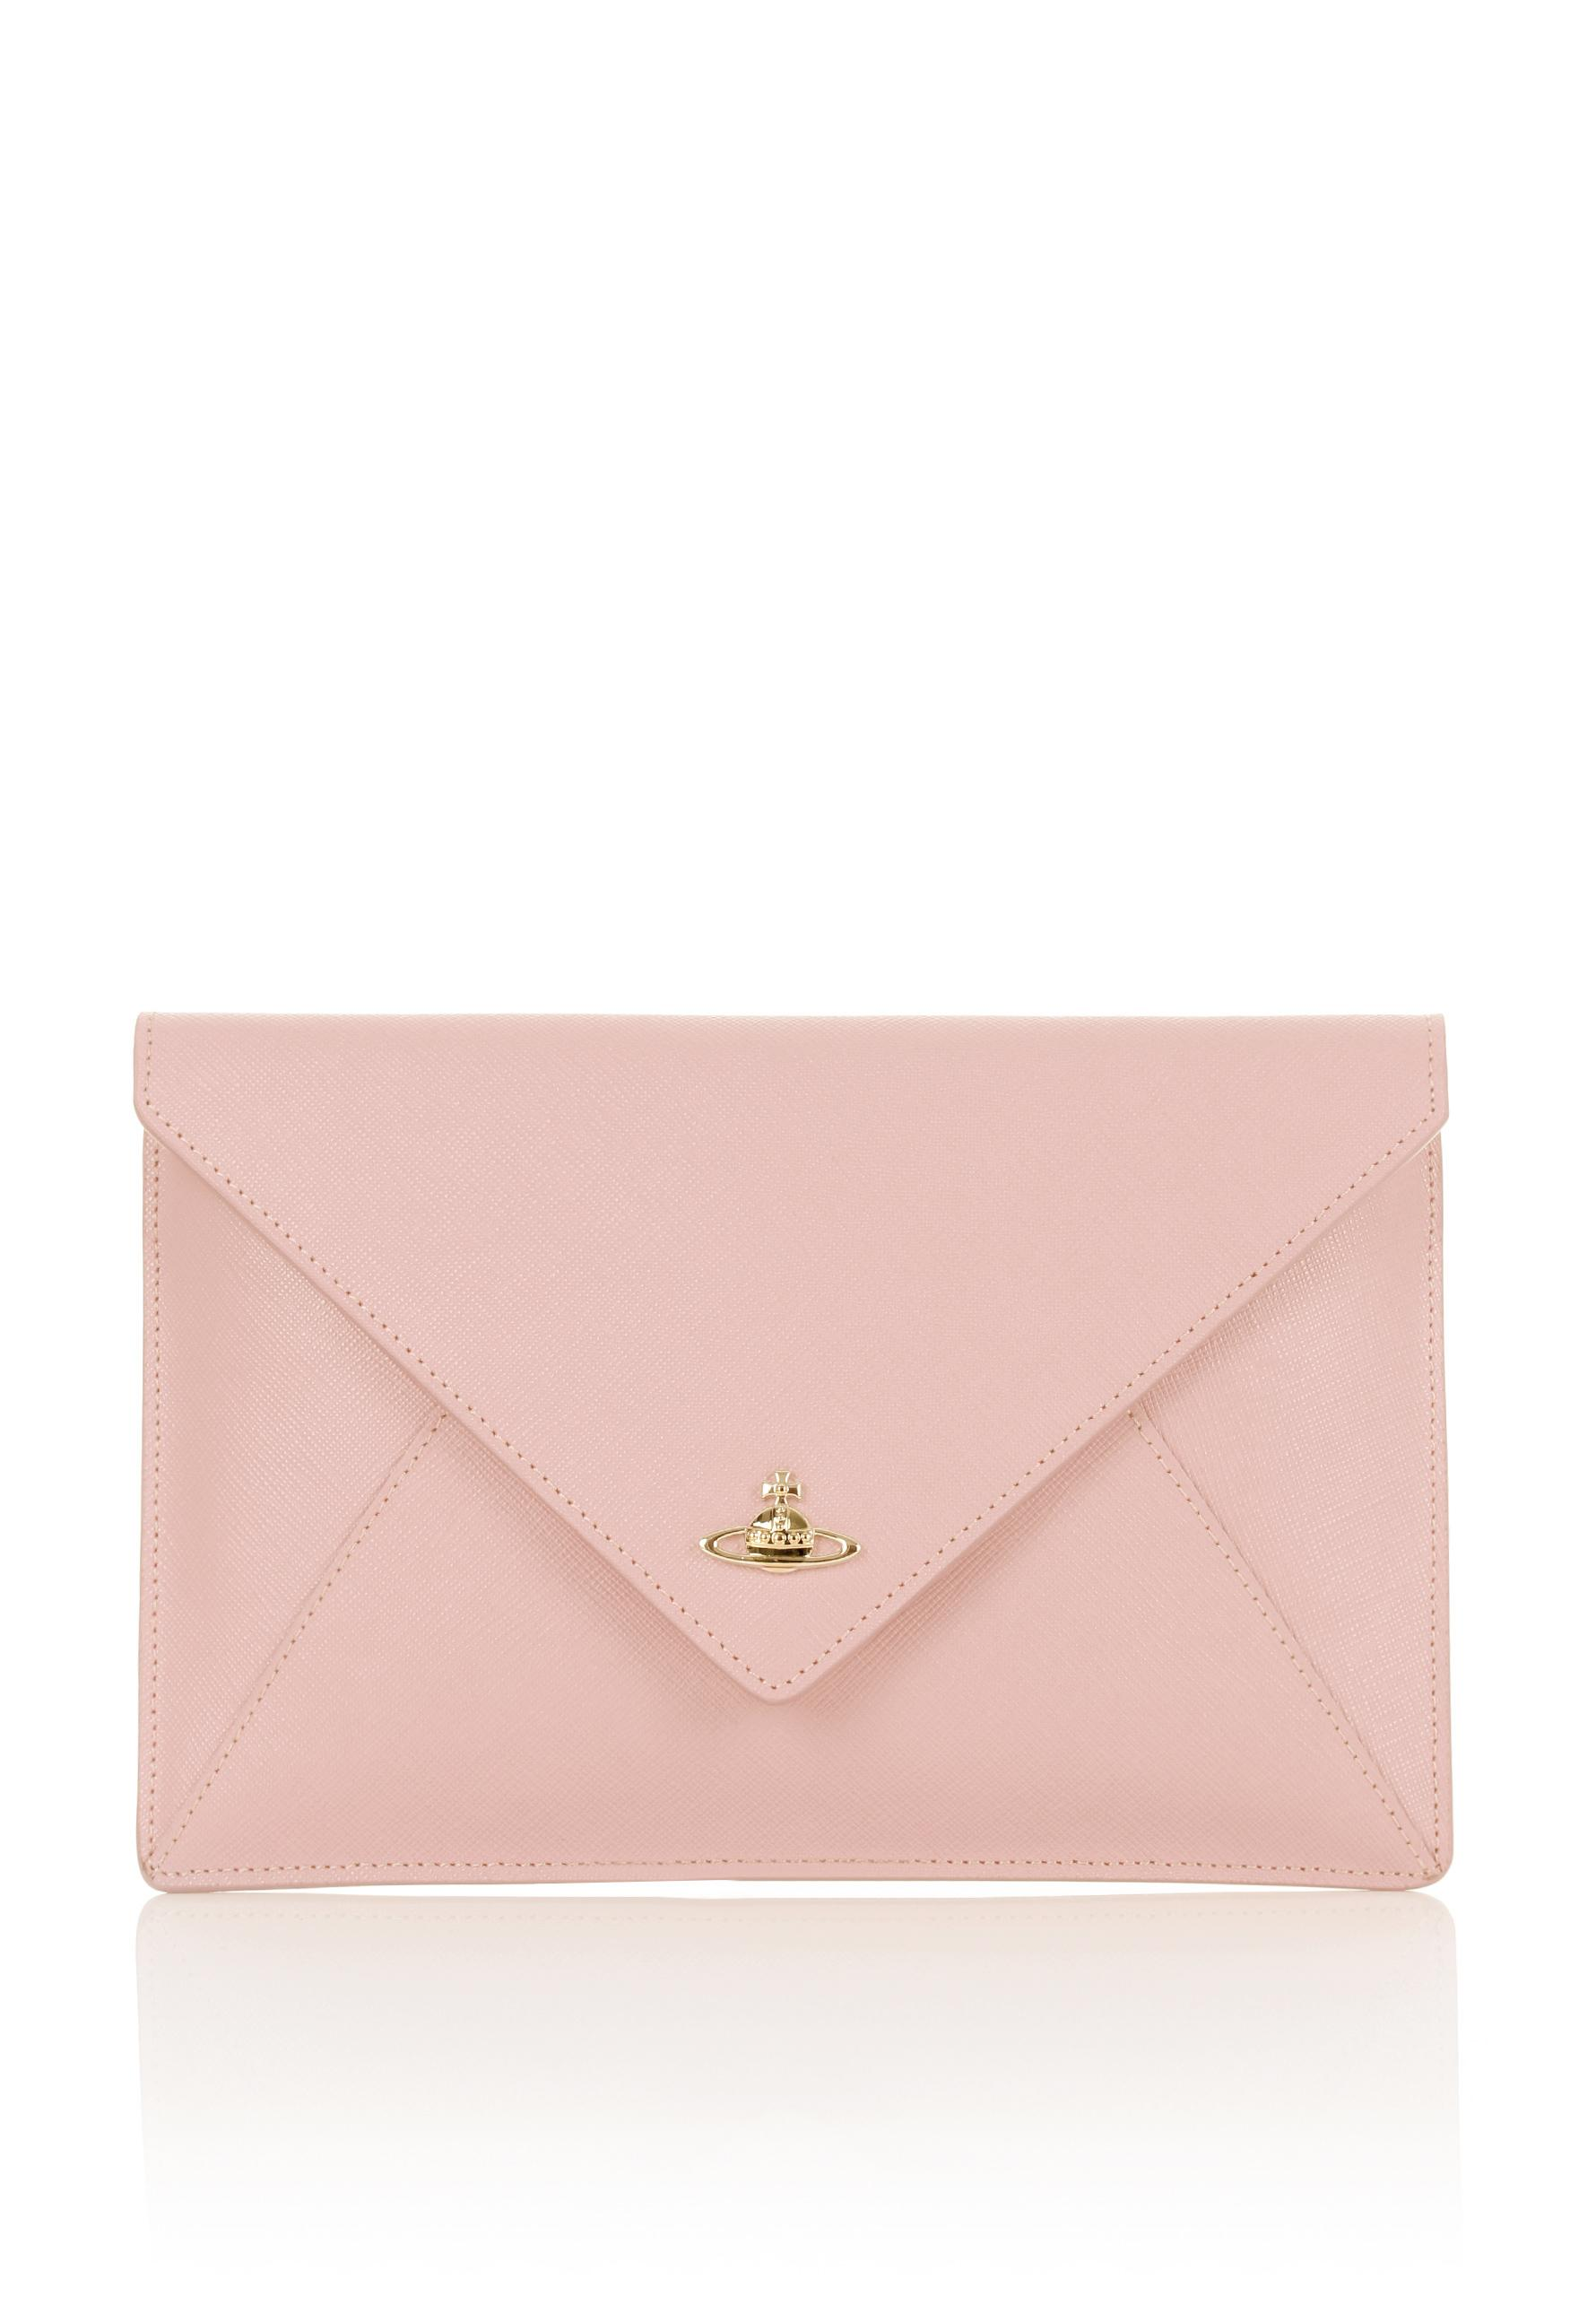 feaac9217f3 Vivienne Westwood Pouch 7040 Envelope Clutch Pink in Pink - Lyst